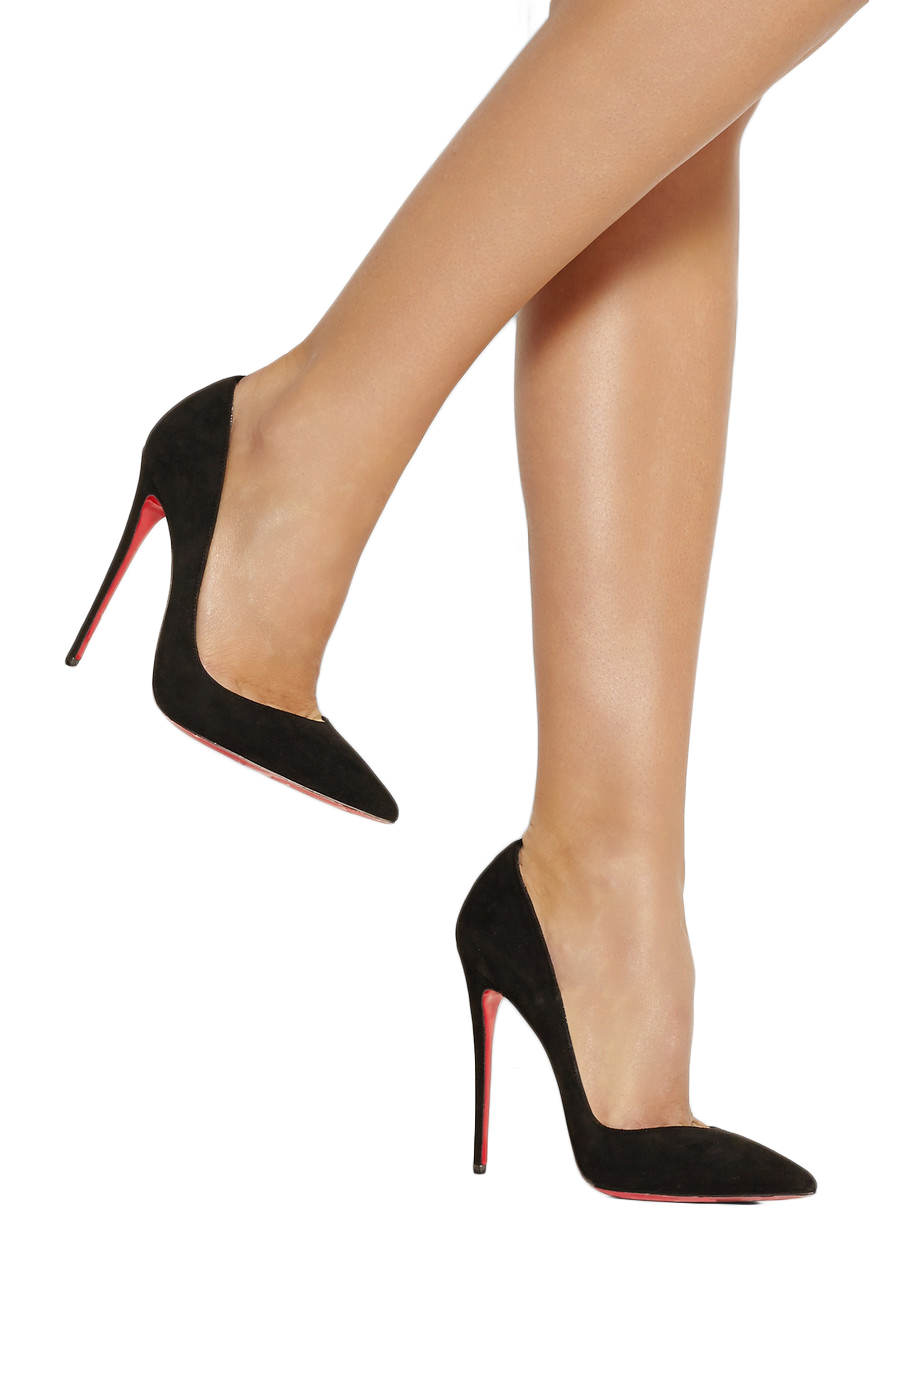 How to distinguish the Christian Louboutin So Kate from